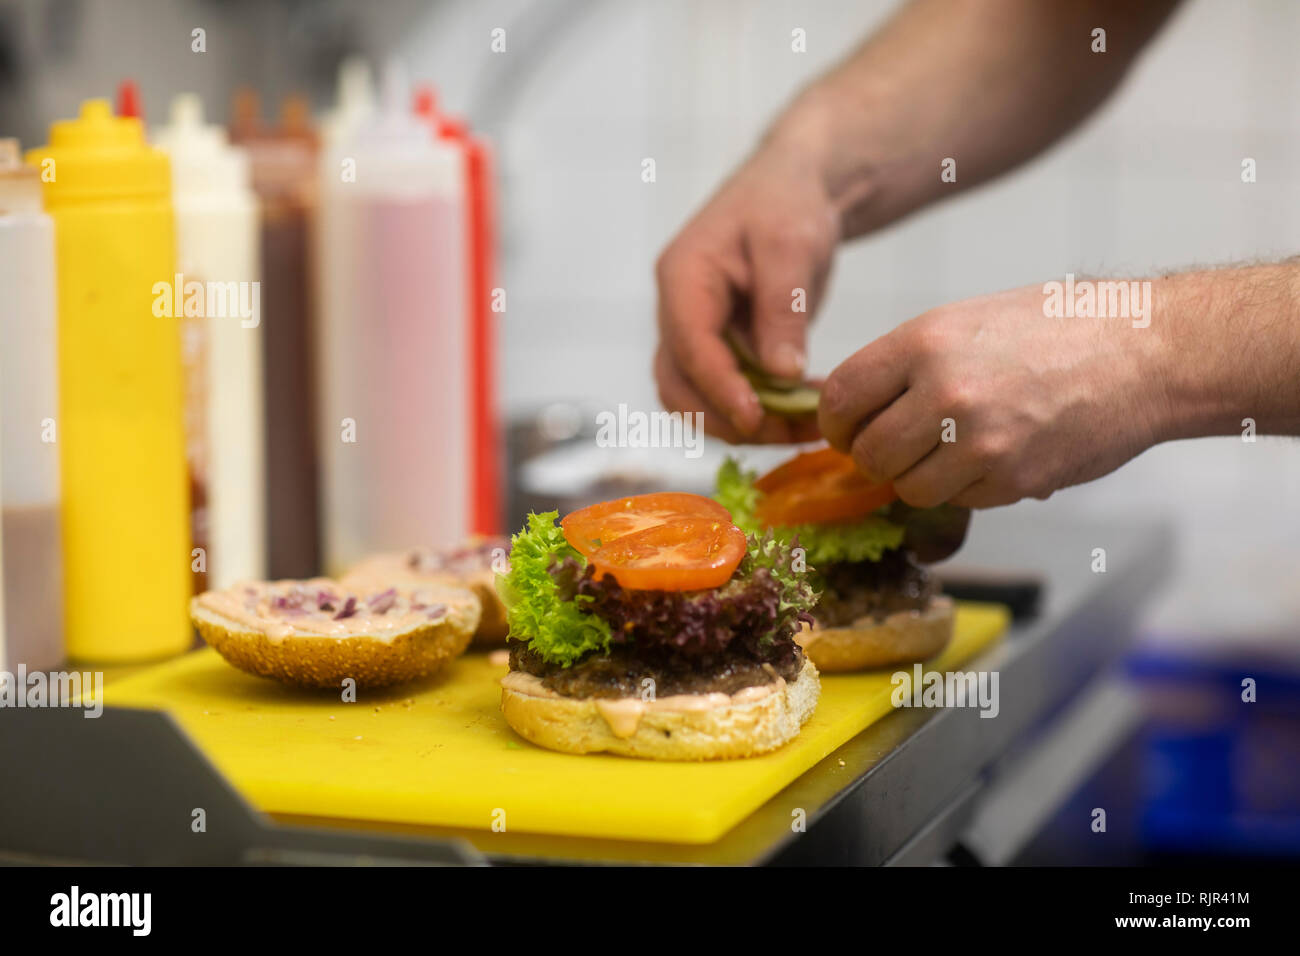 Fast food worker adding salad to hamburger in commercial kitchen, close up of hand - Stock Image